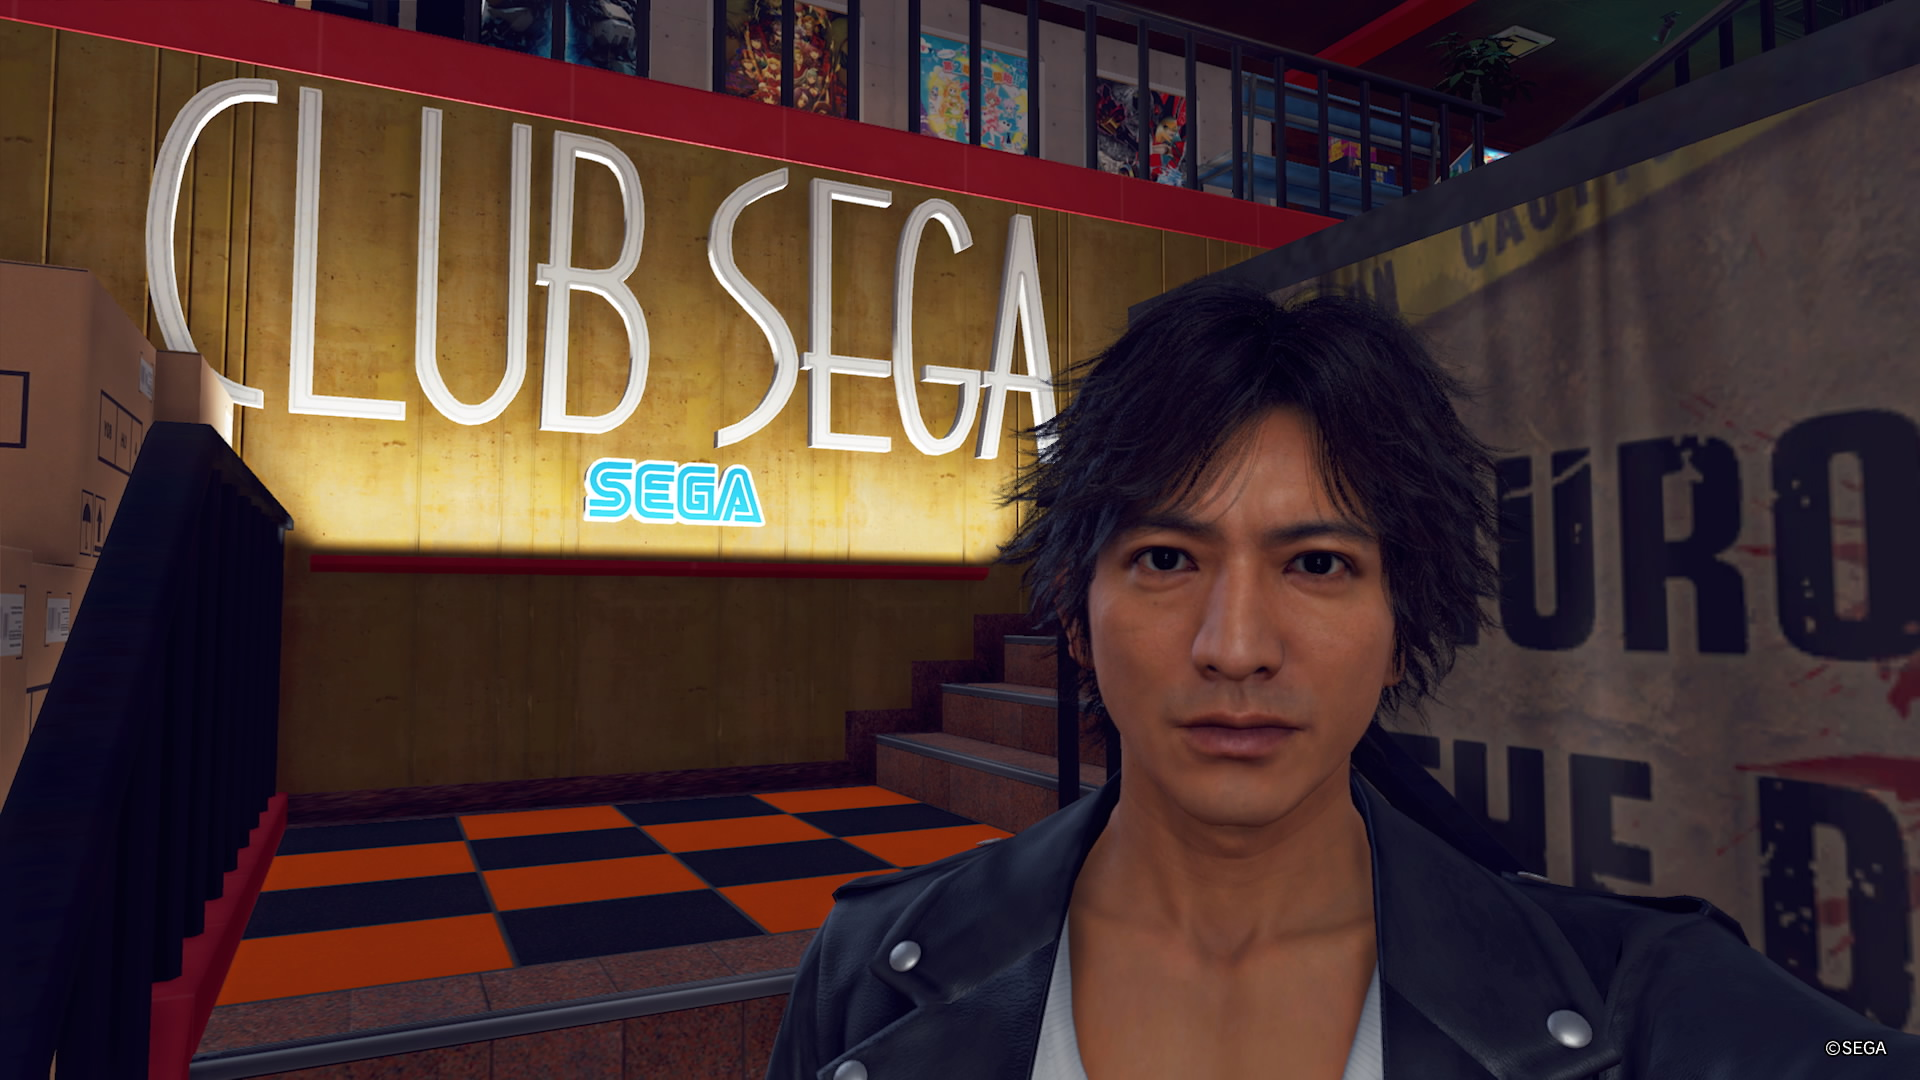 Club SEGA (Theater Square) Judgment Yagami